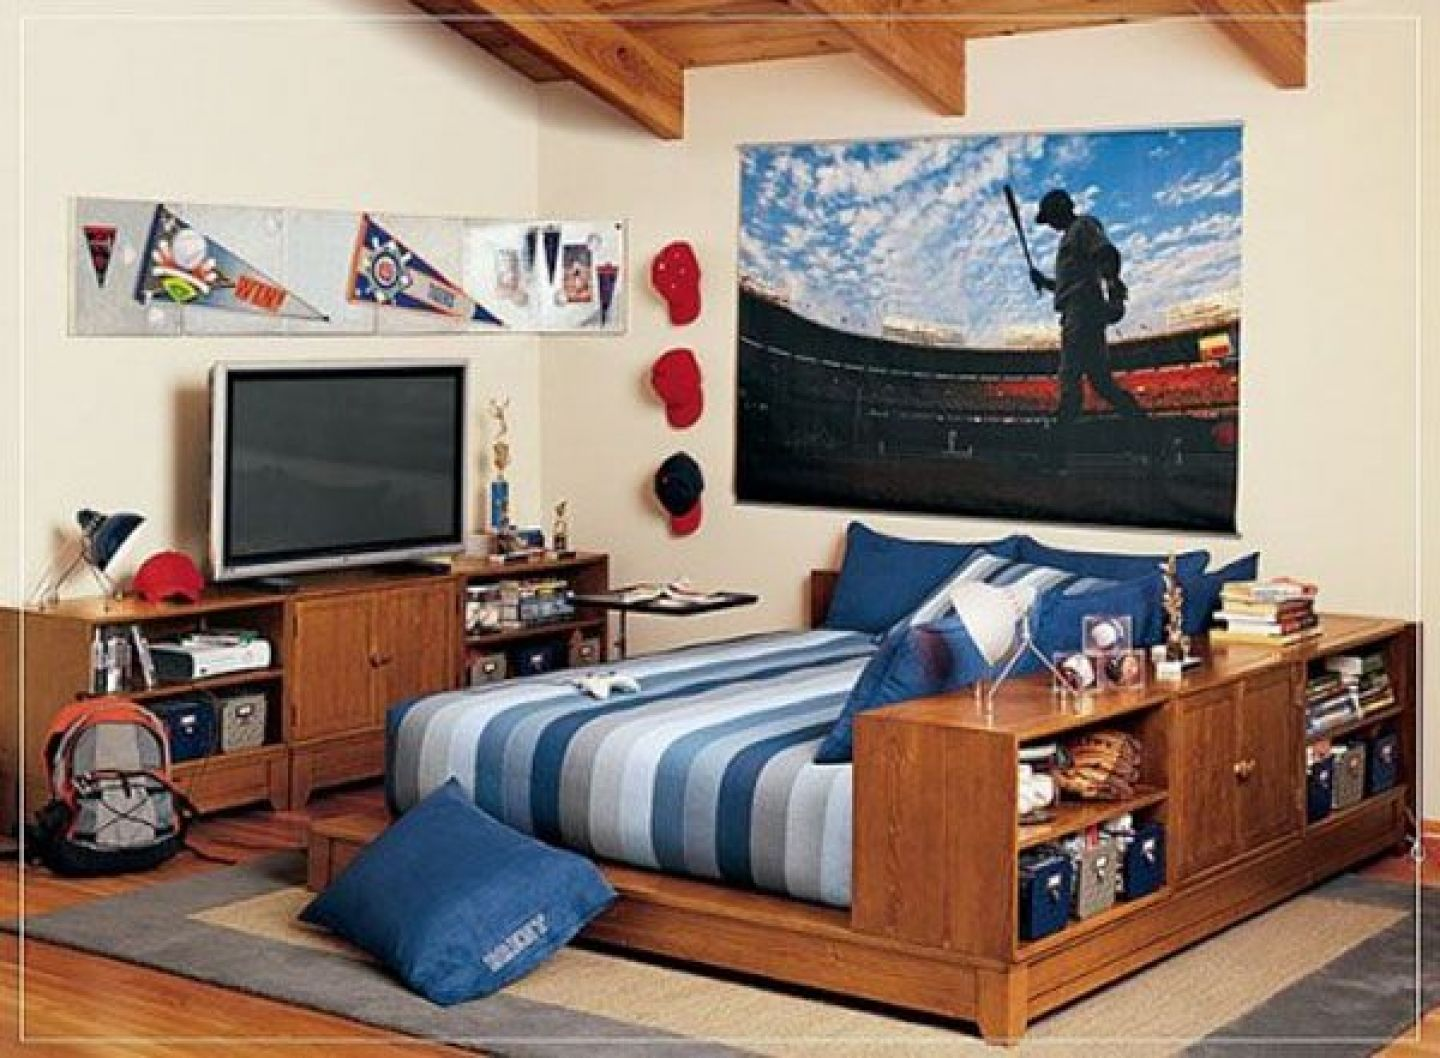 Teen Boy Bedroom Ideas 5 | Boy bedroom | Pinterest | Teen boys ...